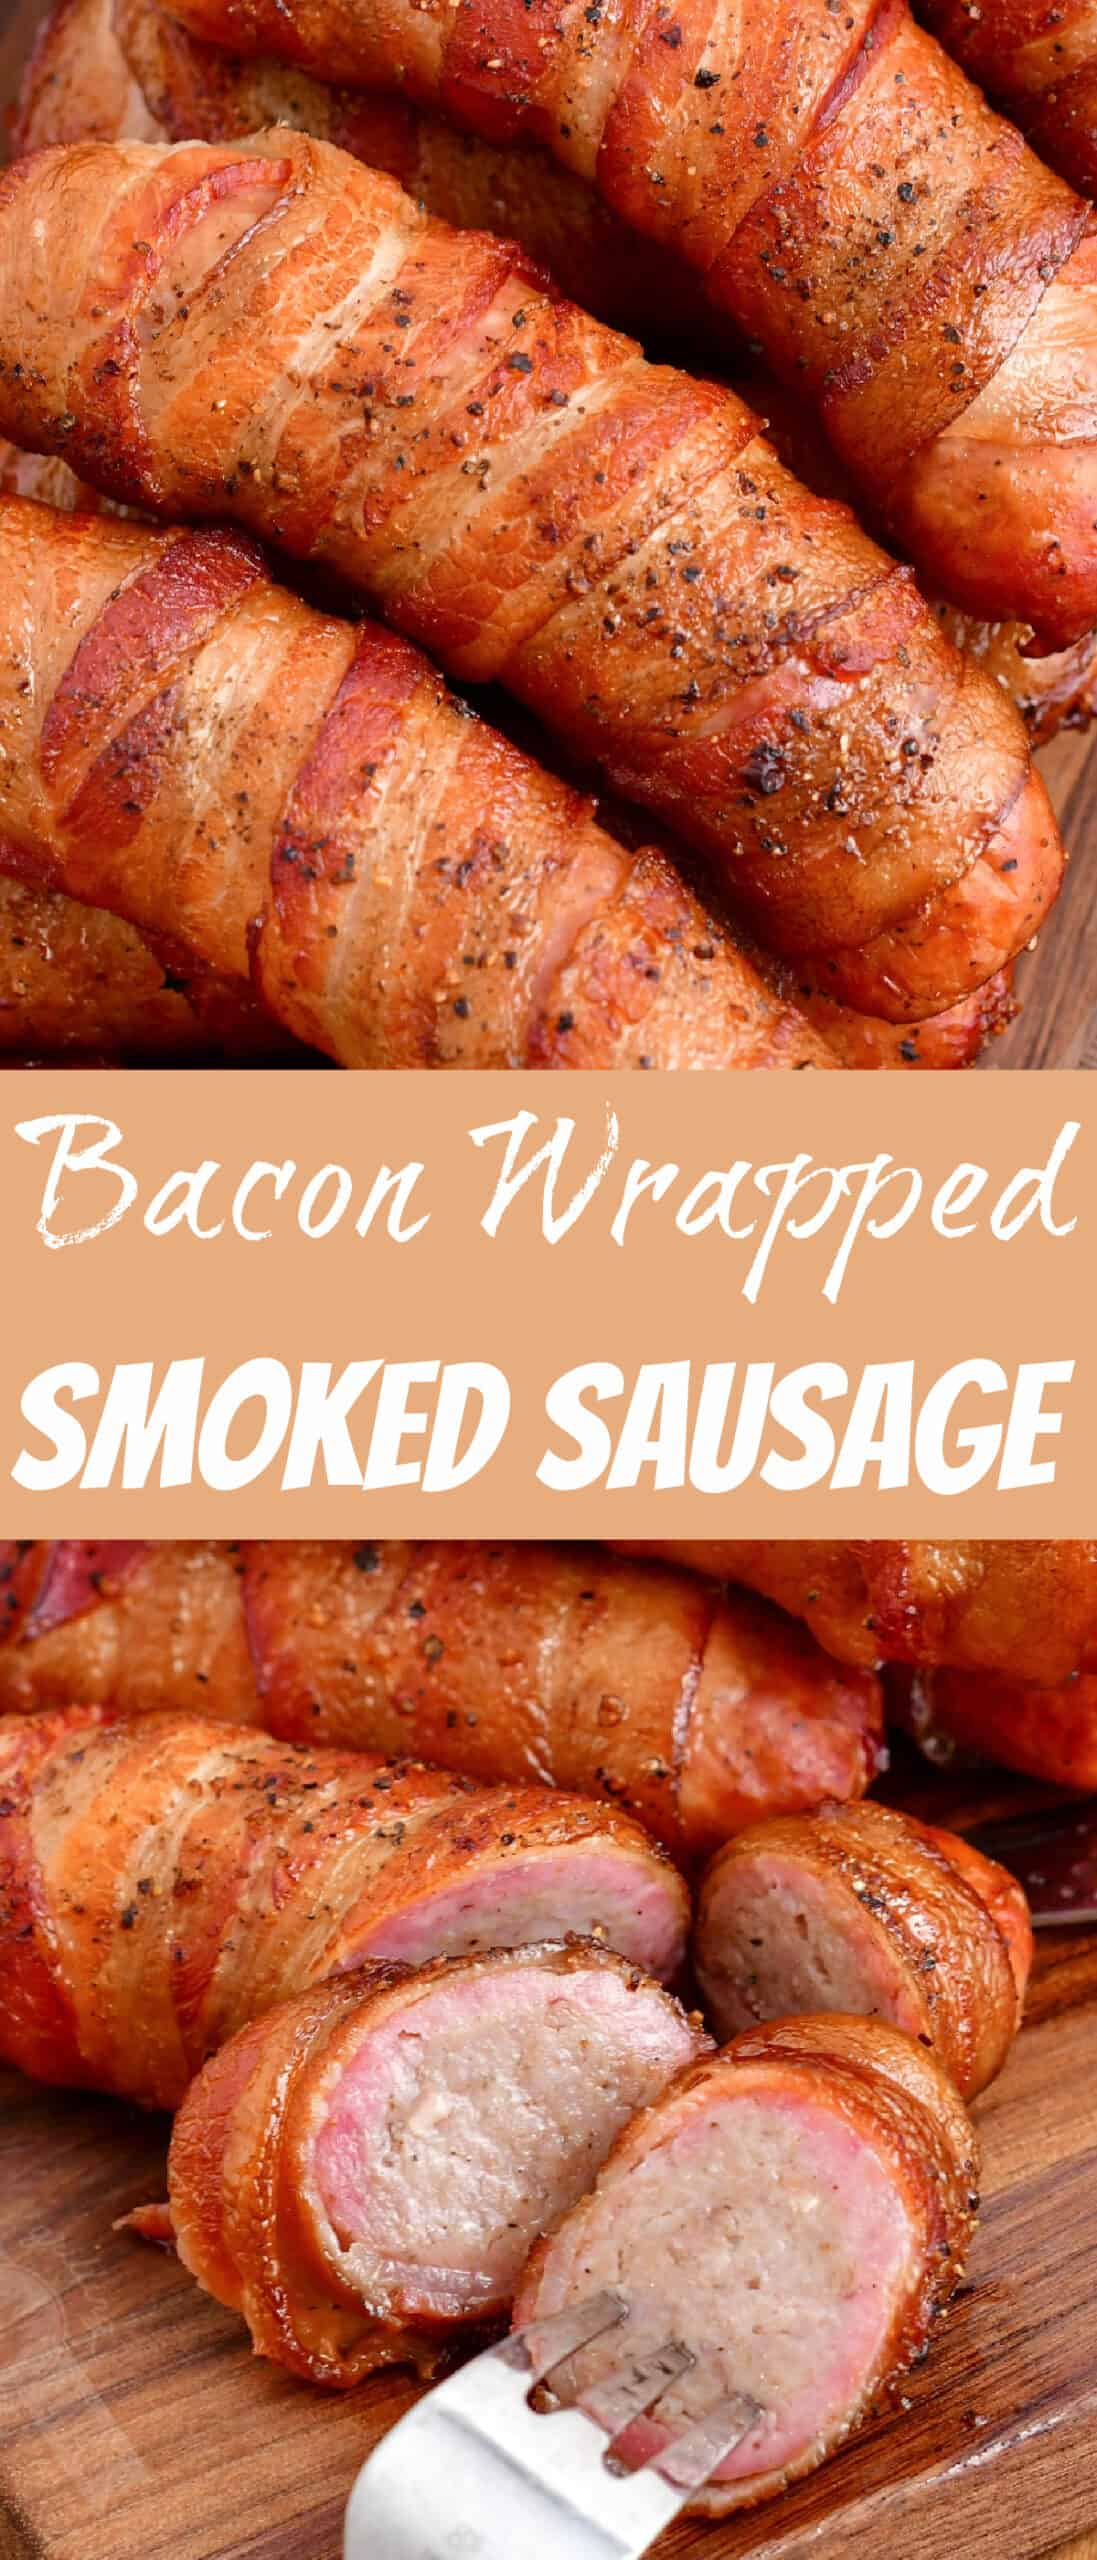 title collage of smoked bacon wrapped sausages and sausage sliced